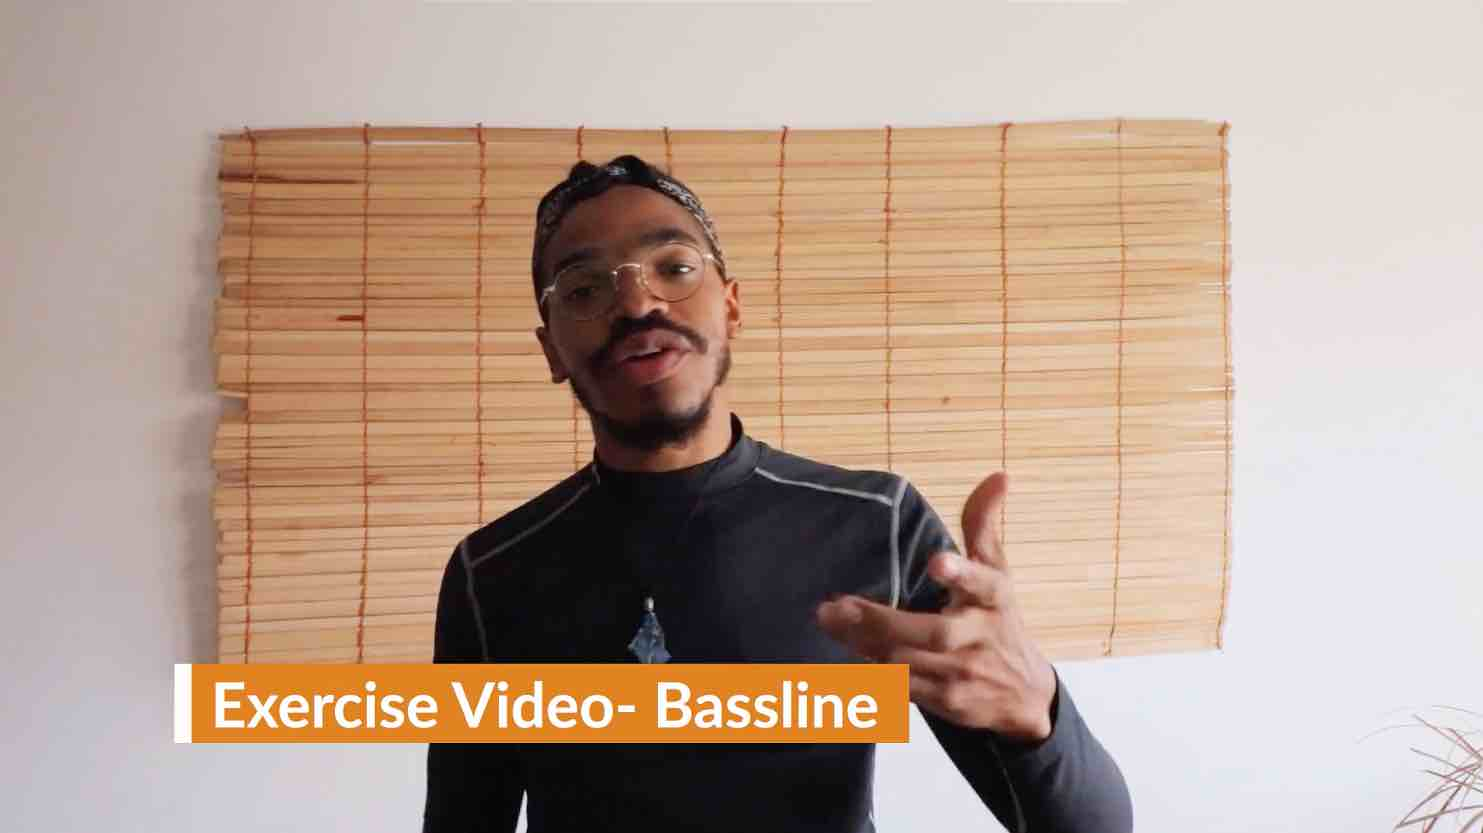 KAMAUU Intro to Vocal Production Course Episode 03 Creating the Bassline Lecture Image